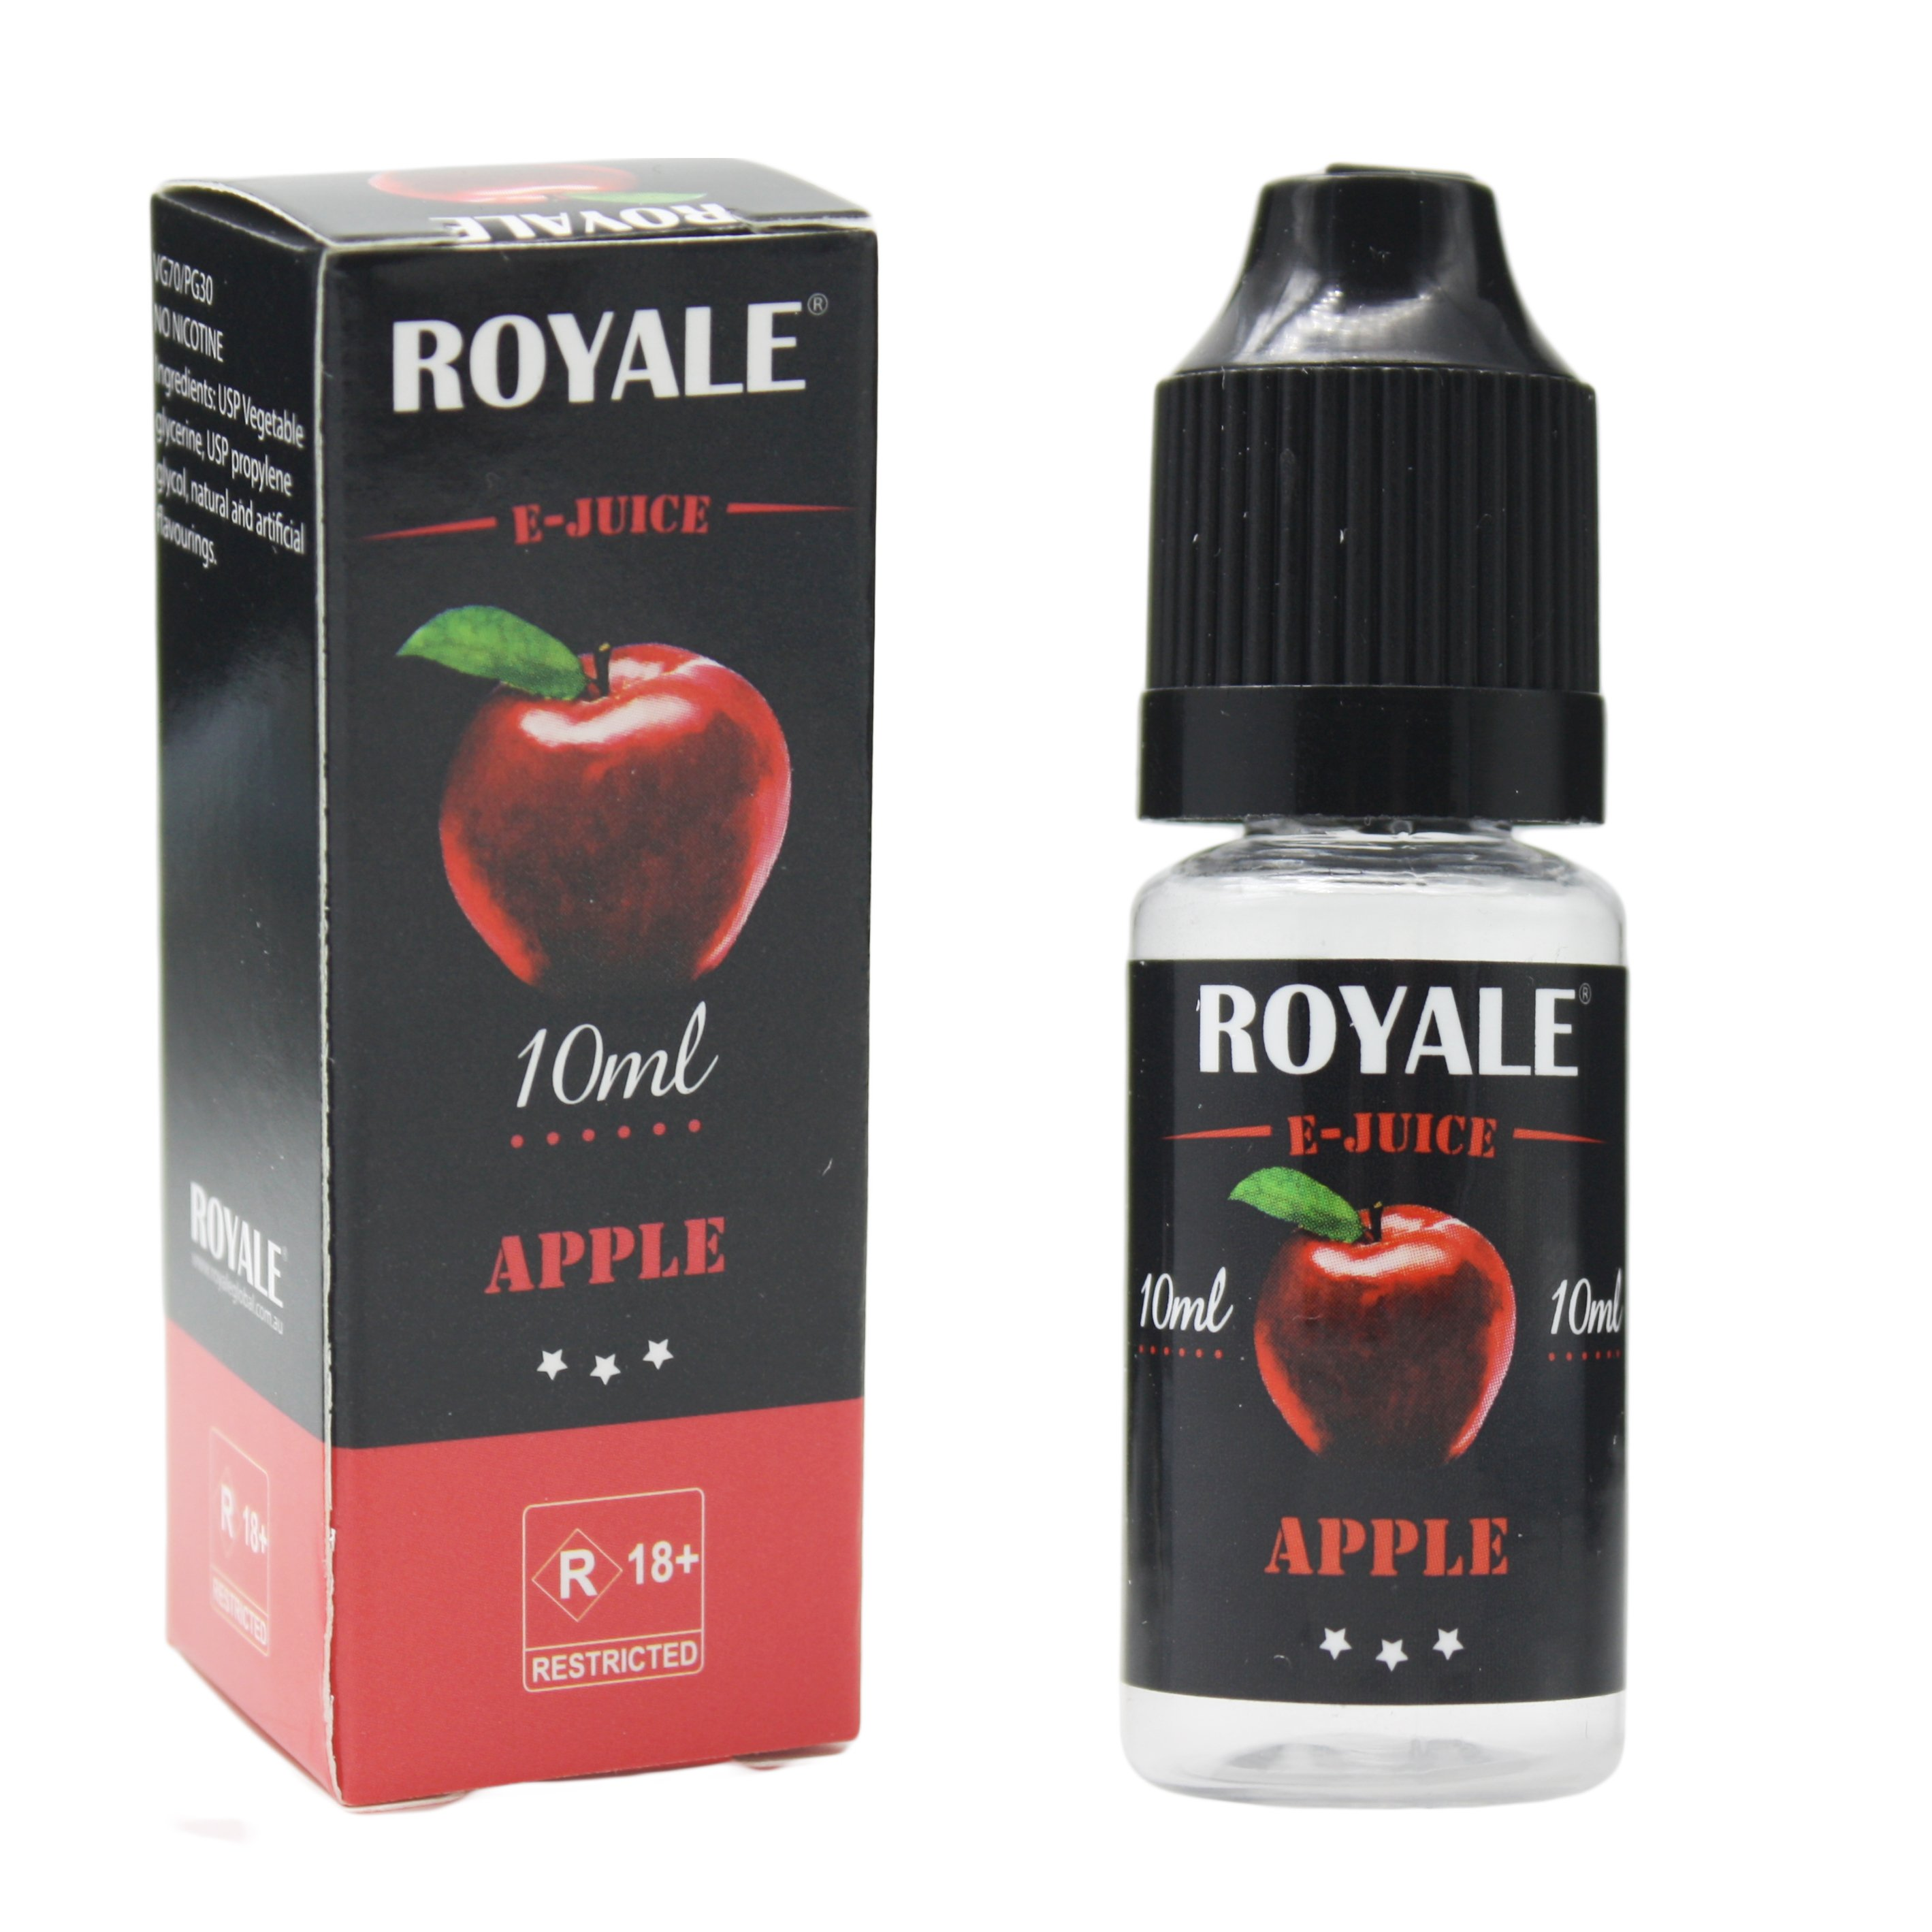 Royale Apple E-Juice